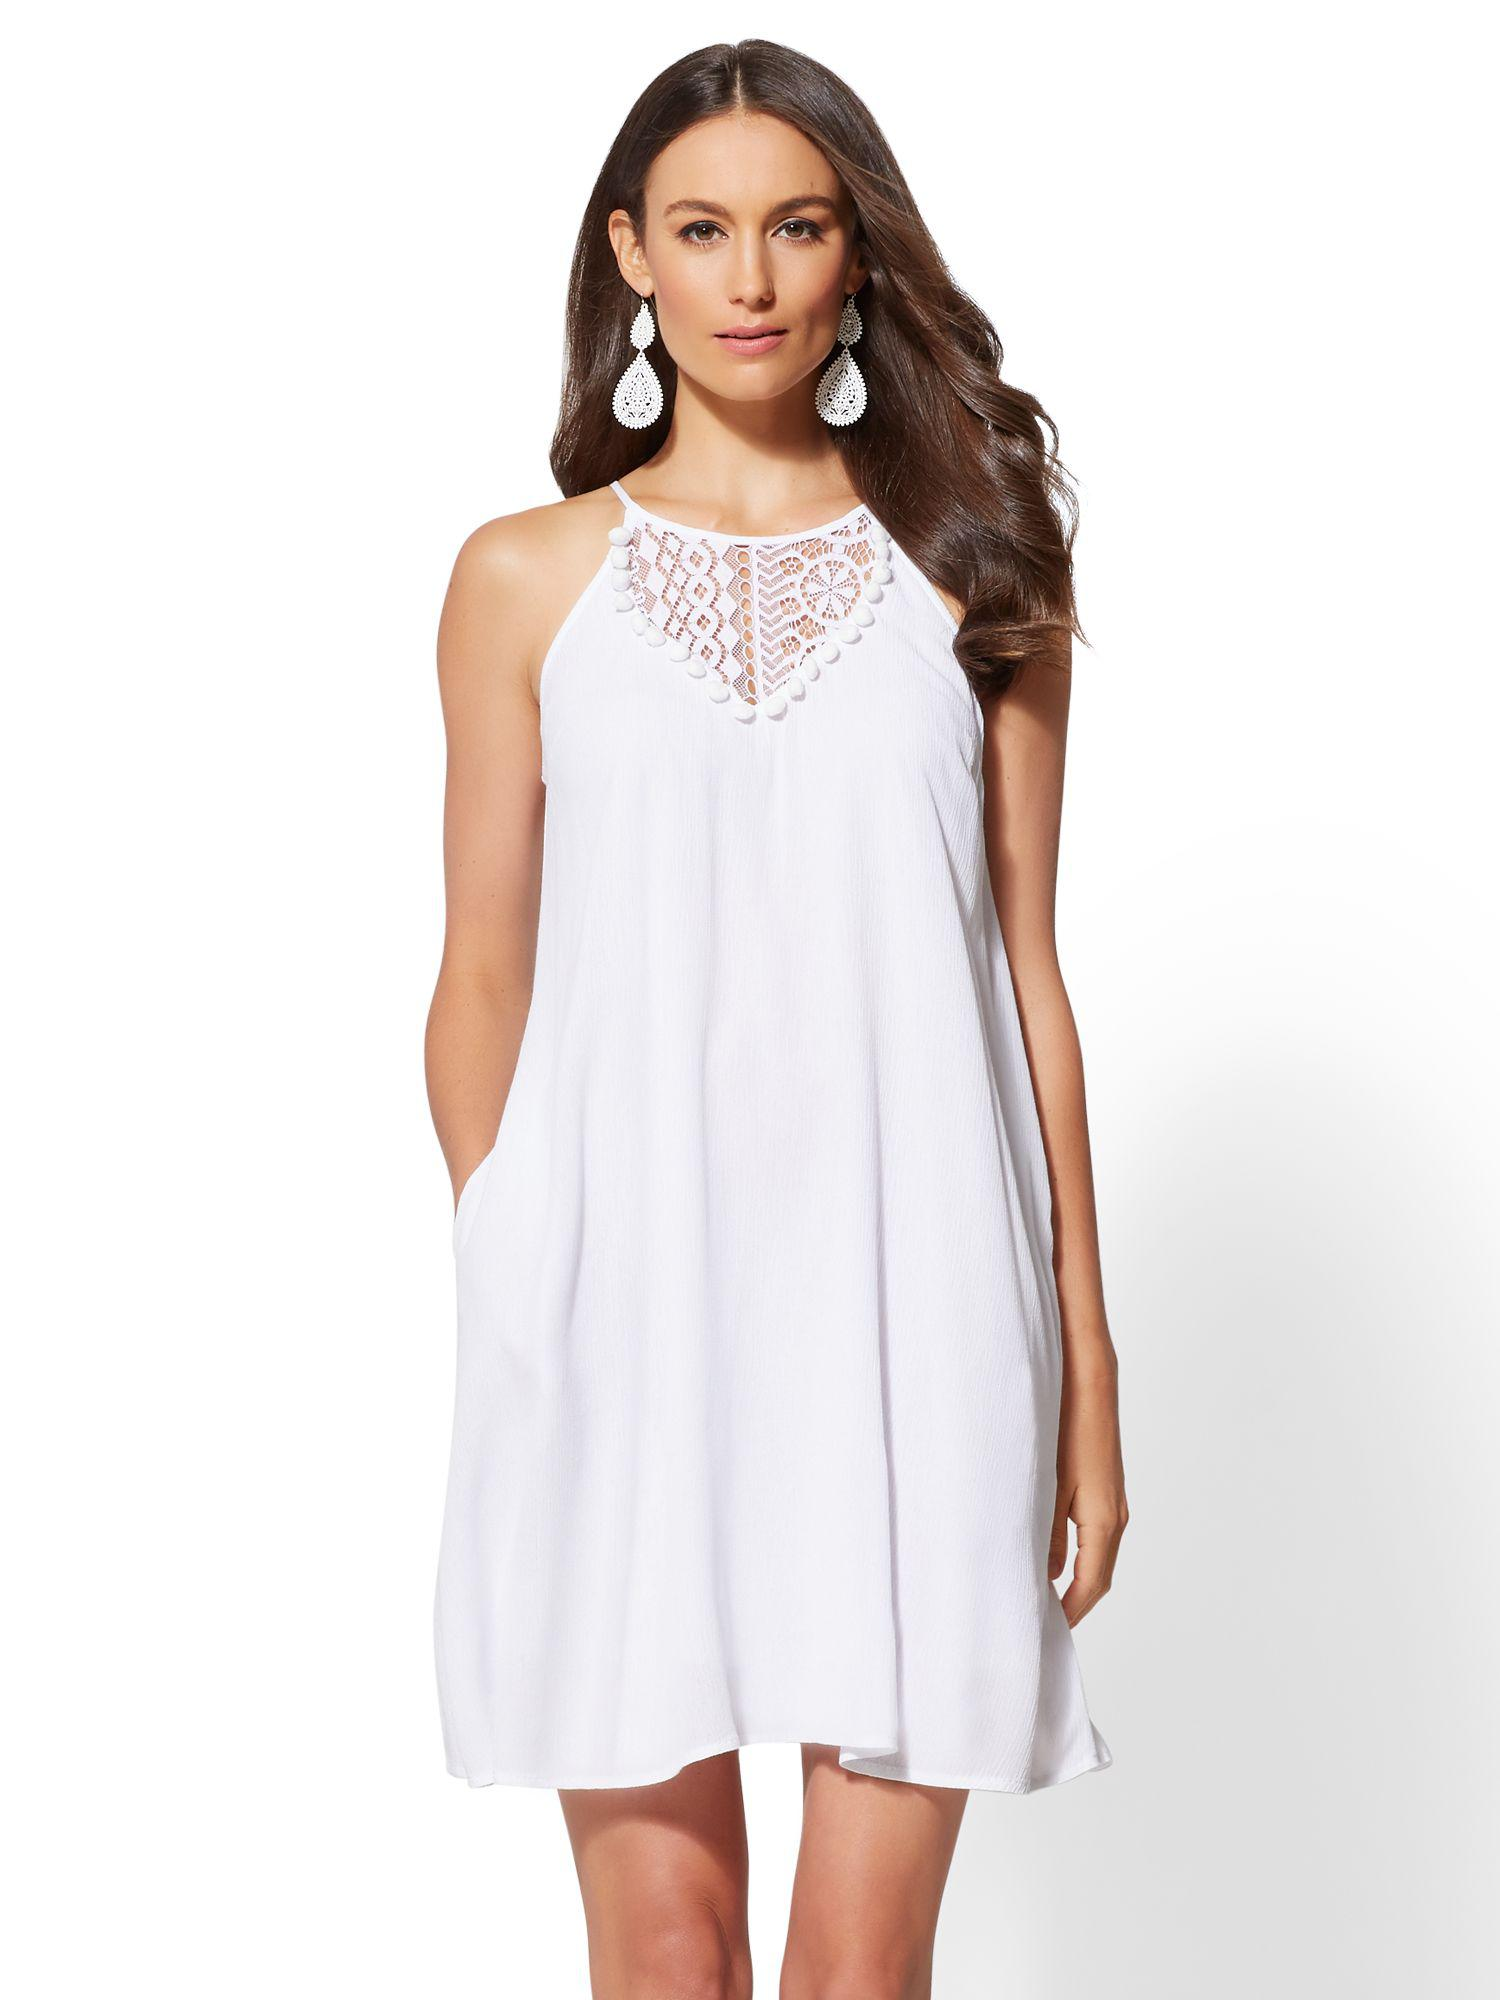 8212a8c4a0 Gallery. Previously sold at  New York   Company · Women s White Lace Dresses  ...